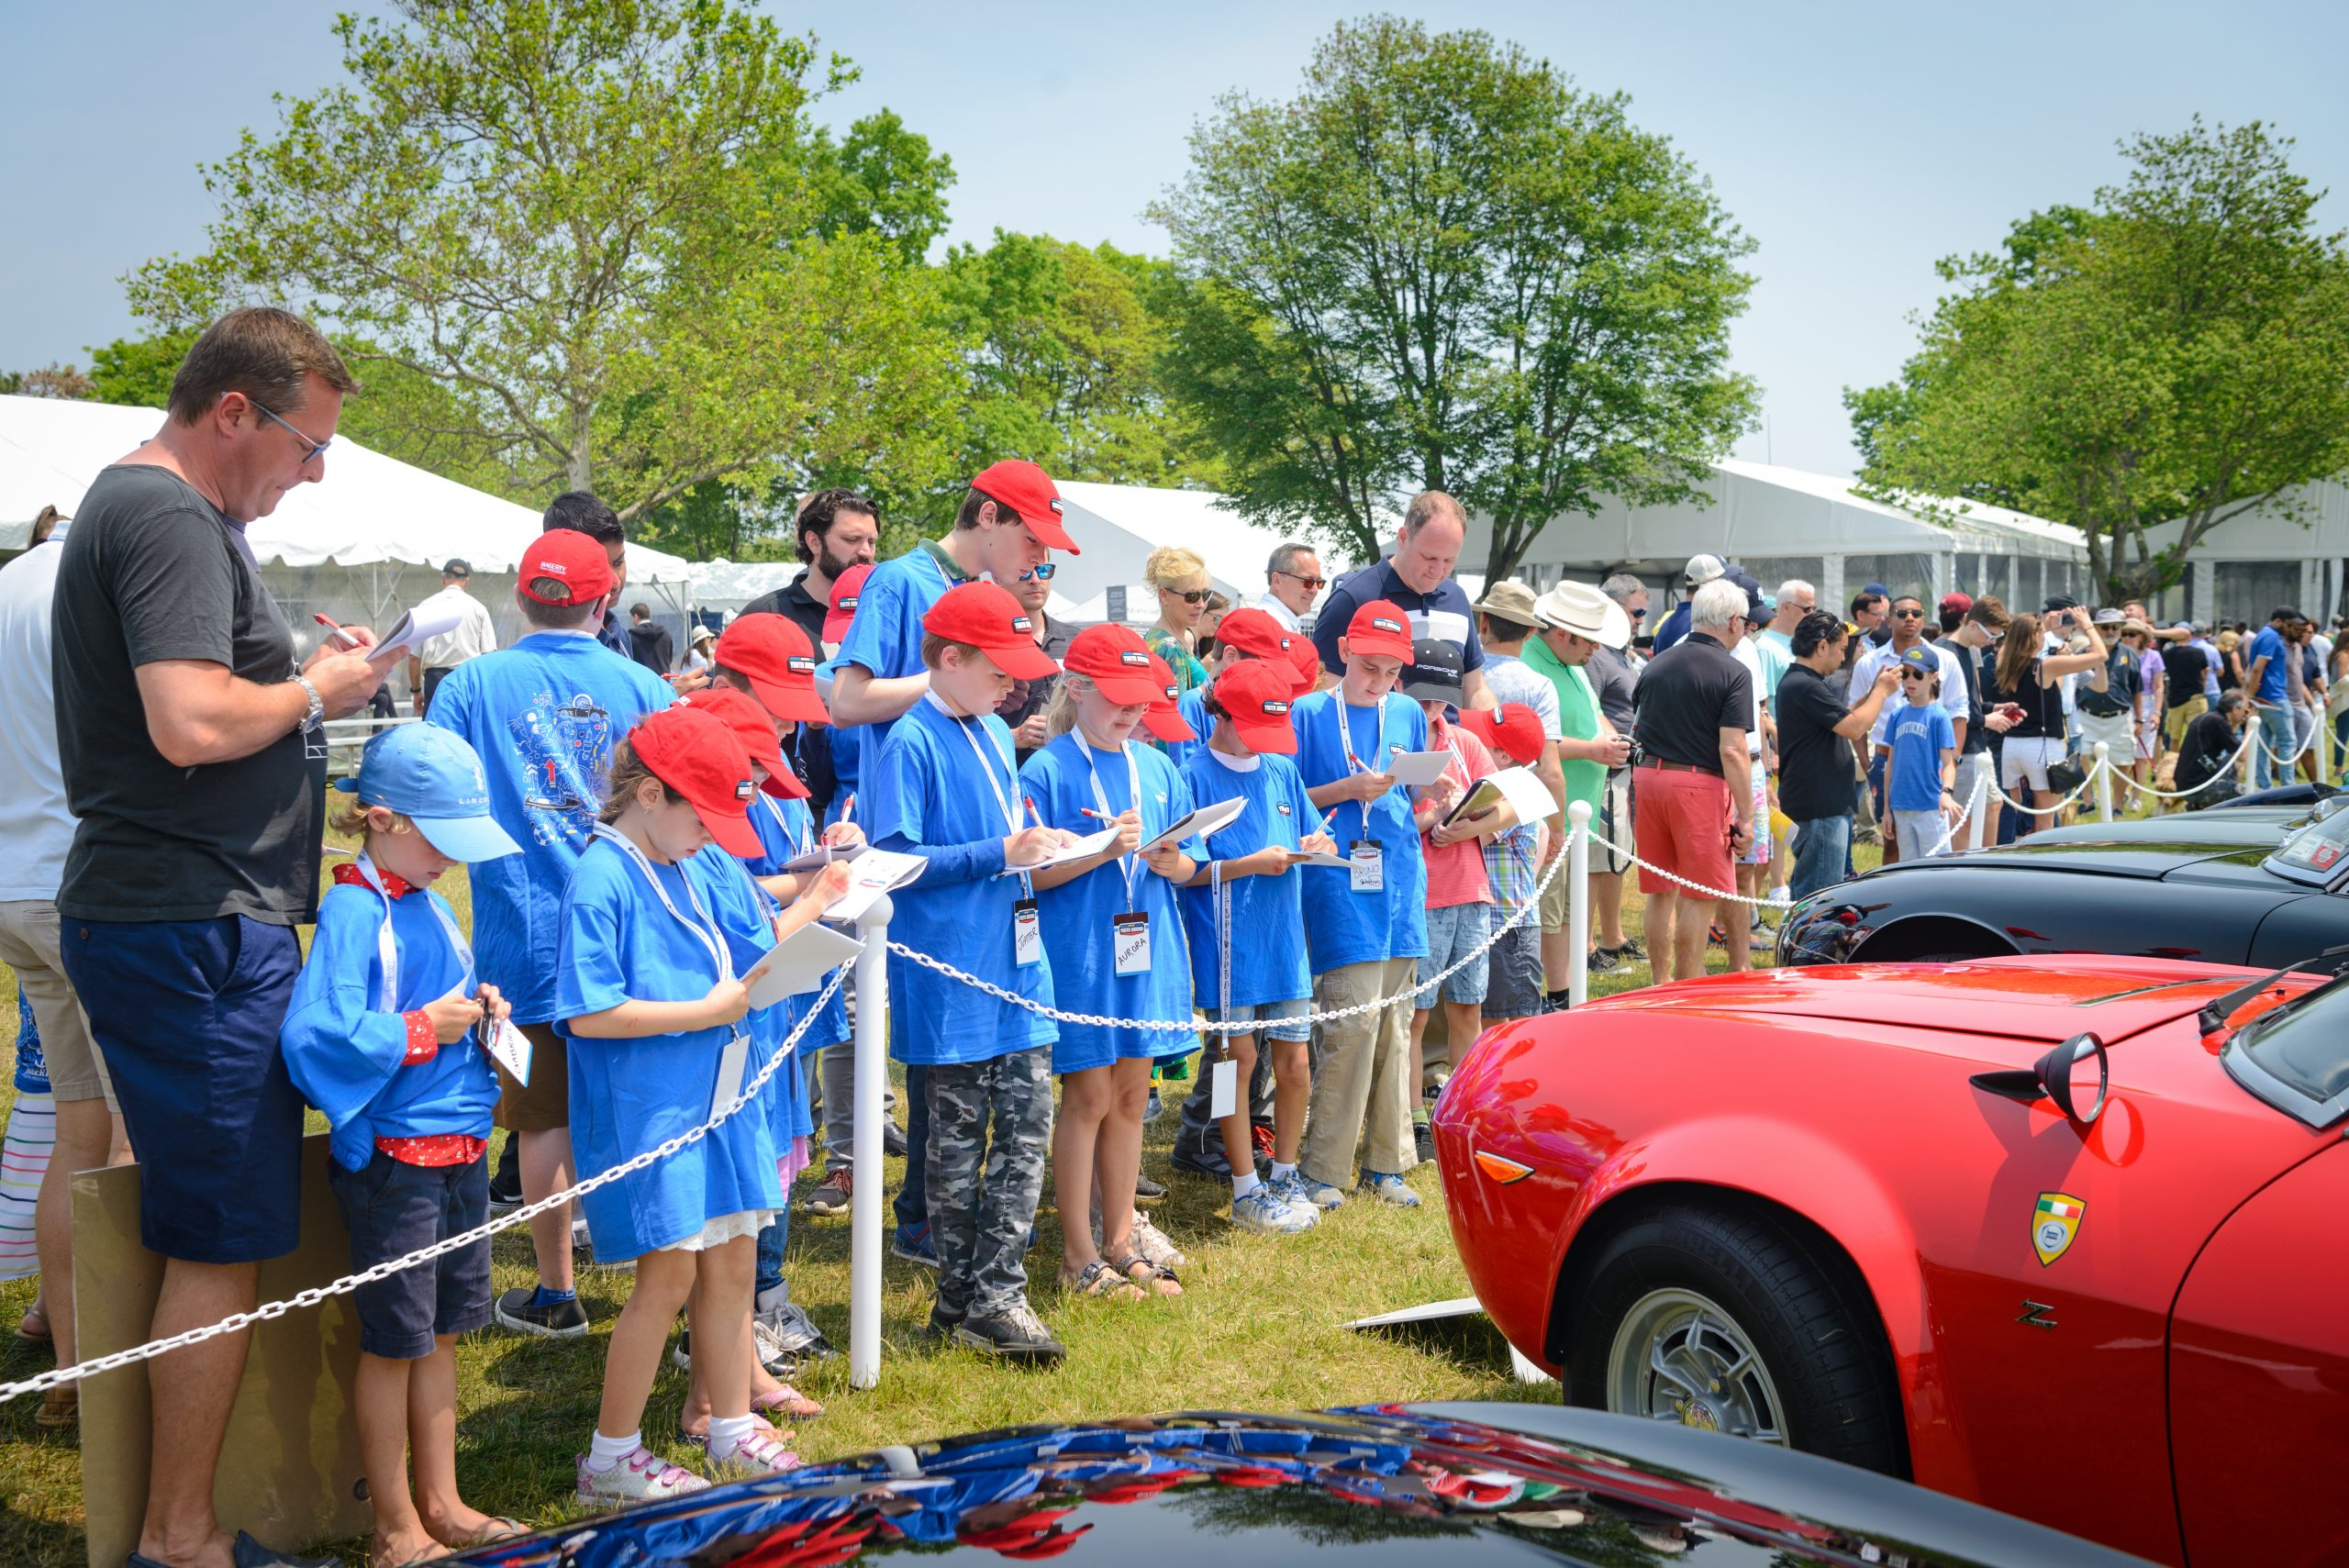 greenwich concours youth judging